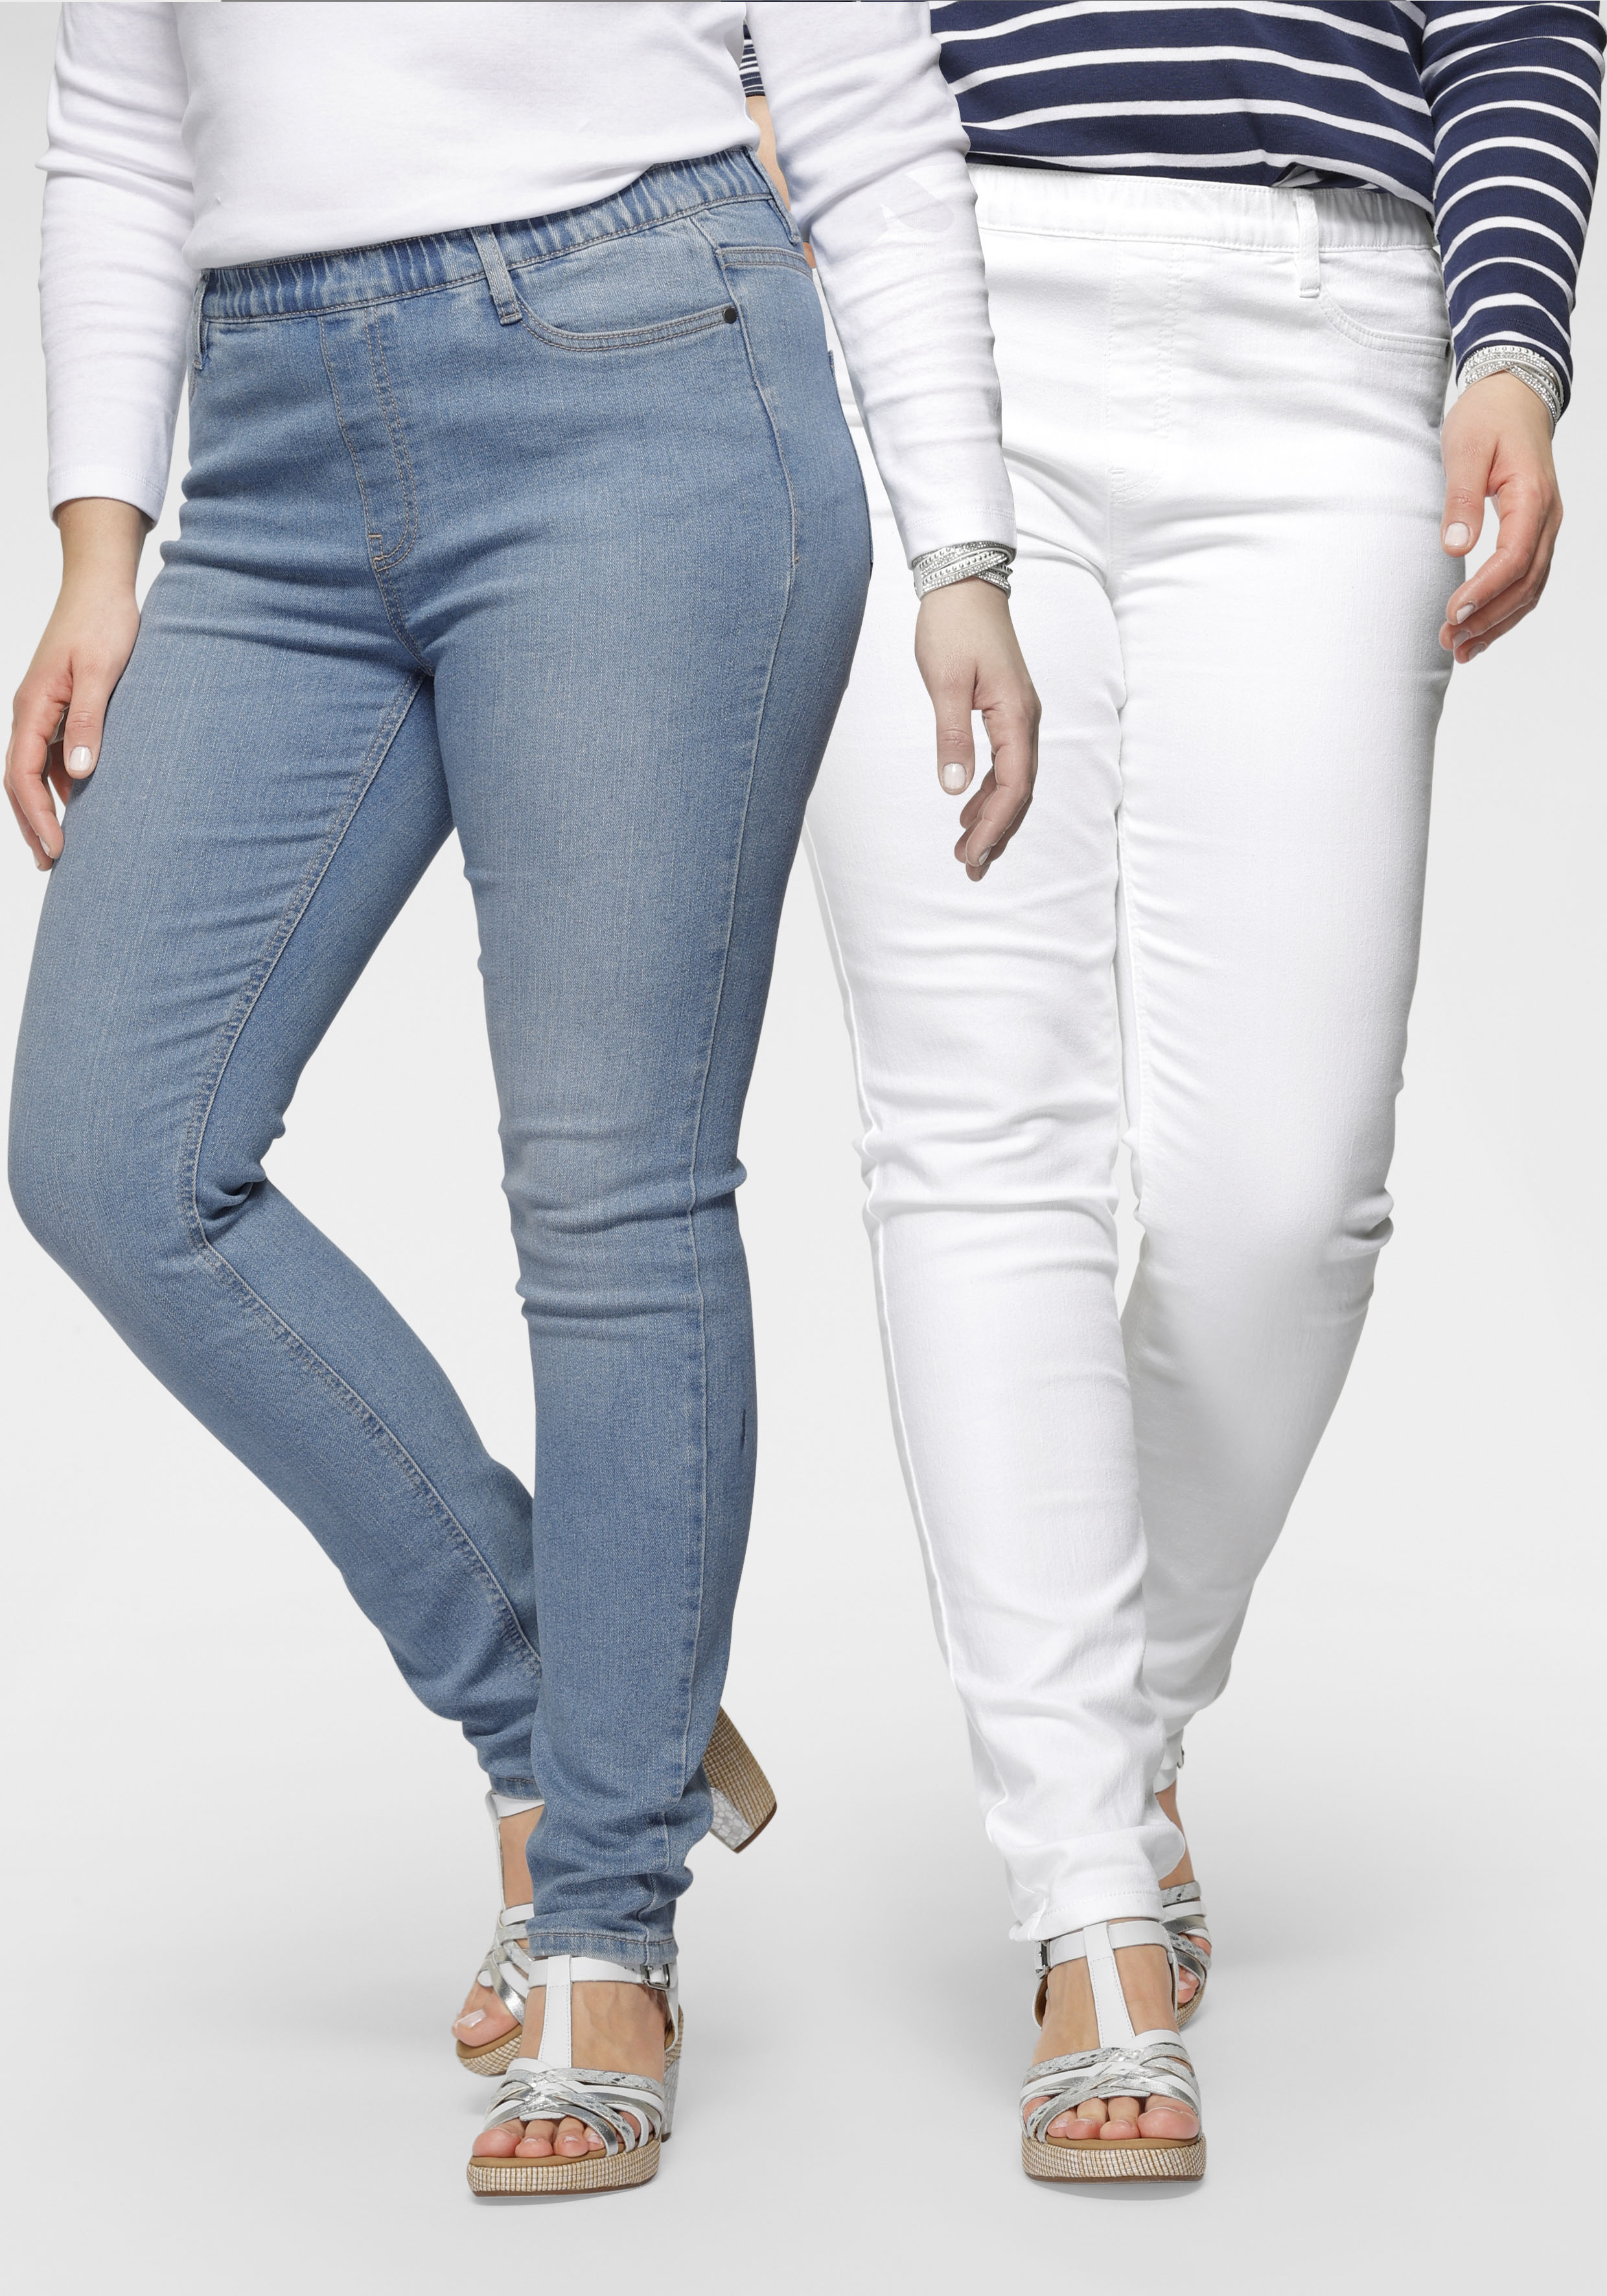 flashlights -  Jeansjeggings, (Packung, 2er-Pack), High Waist